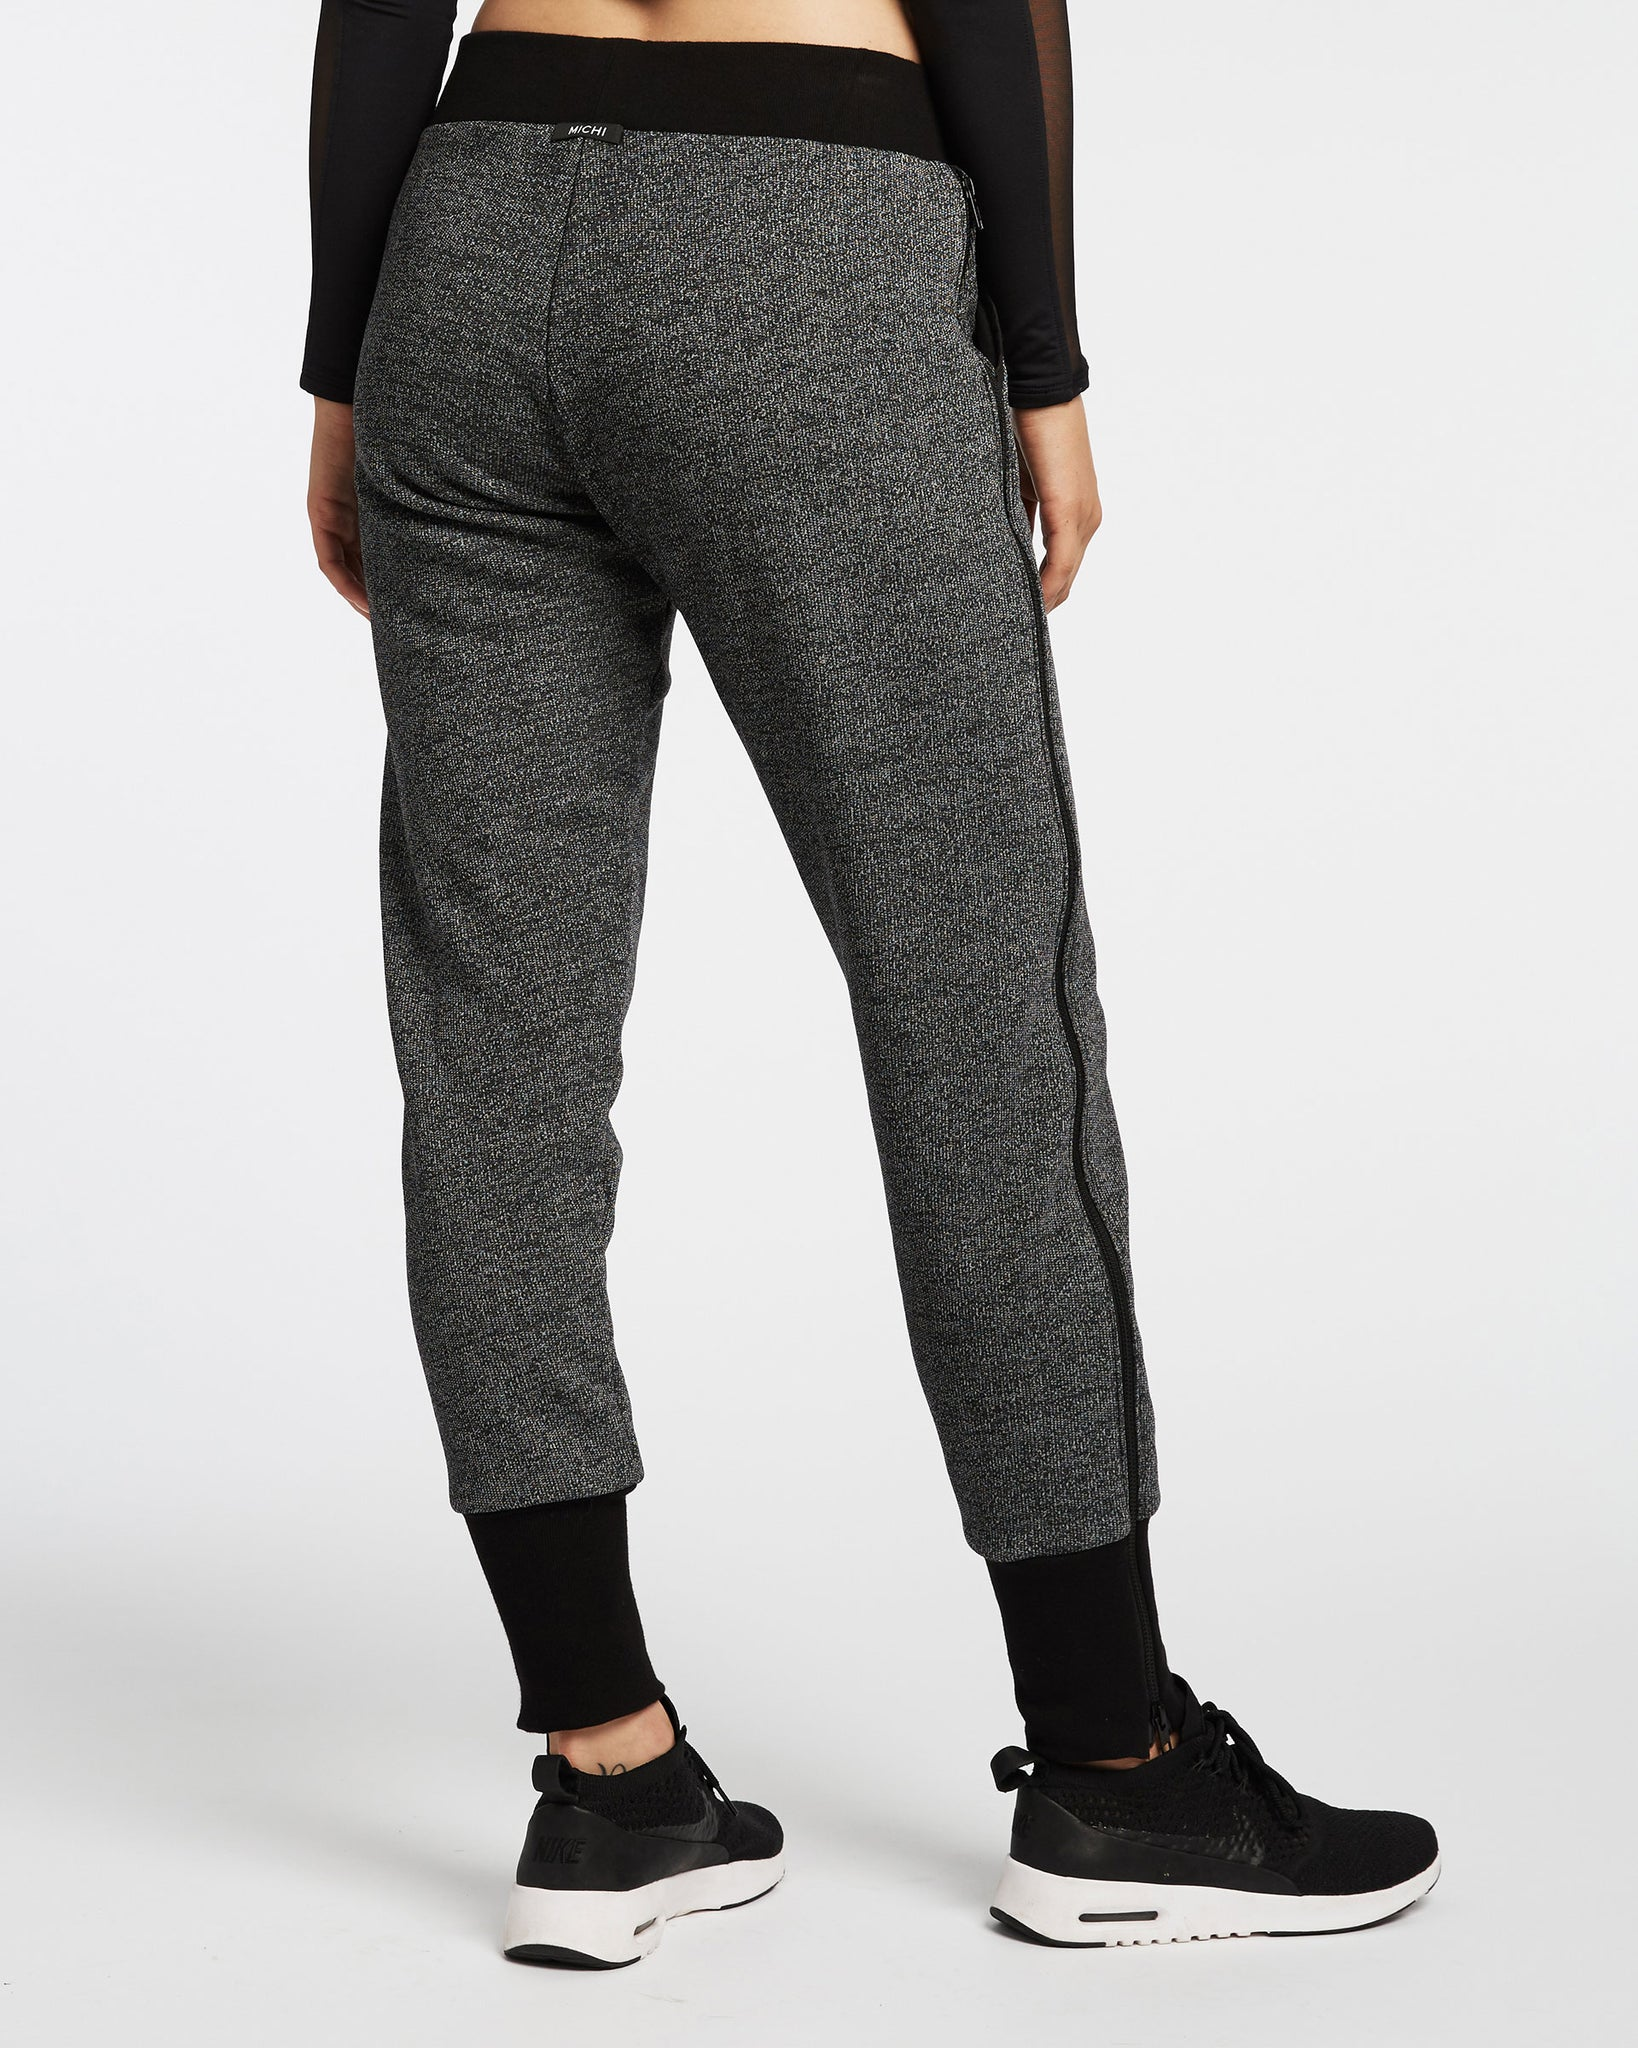 Nebula Sweatpant - Black Speckle